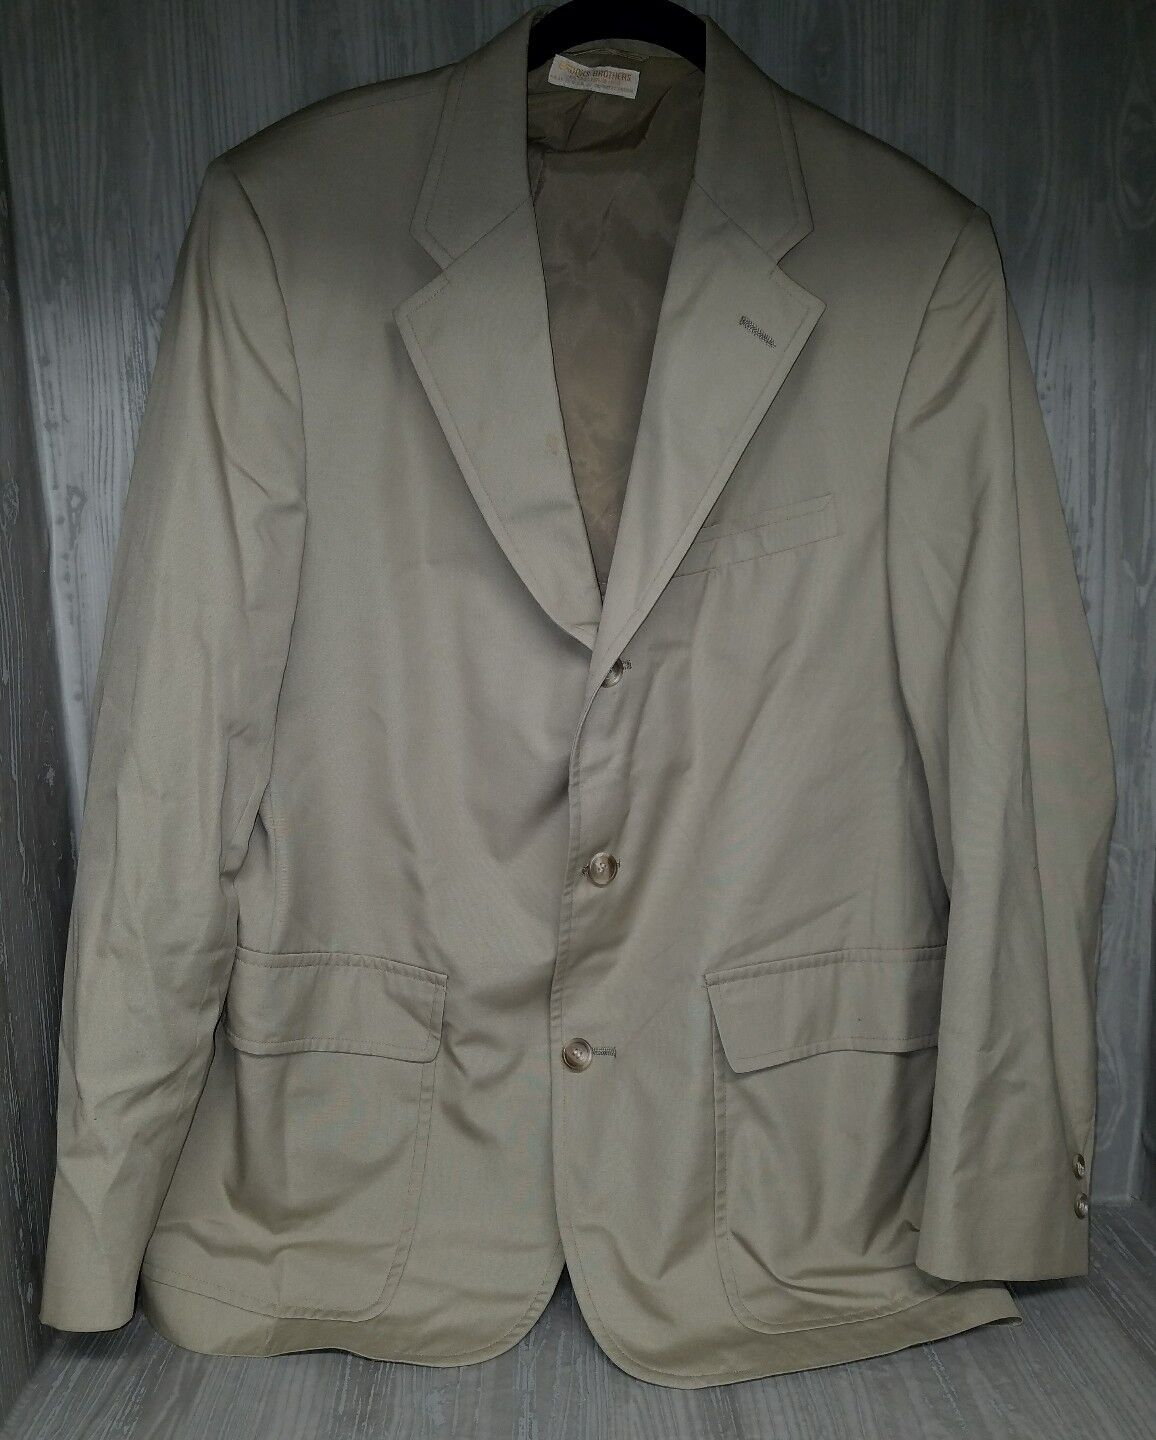 Brooks Brothers 1818 All-season Khaki 3 Button Suit Größe 41R  23